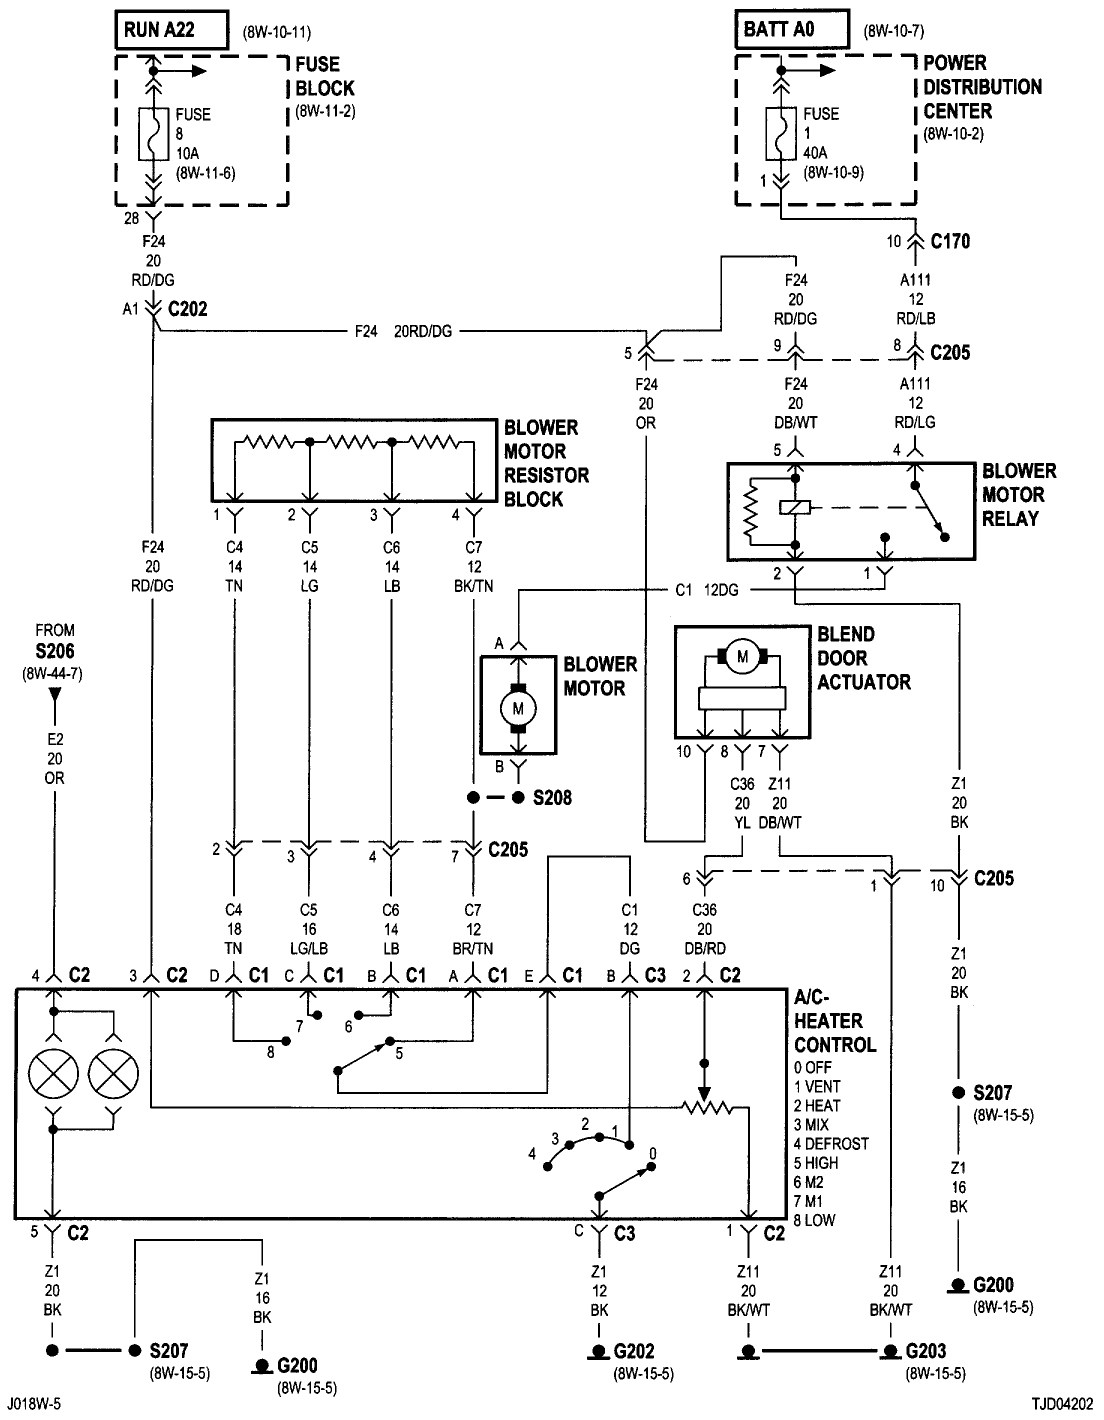 [TVPR_3874]  MD_2949] Fuse Box On A Jeep Liberty Wiring Diagram   Wiring Diagram Jeep Liberty 2008      Gresi Momece Mohammedshrine Librar Wiring 101